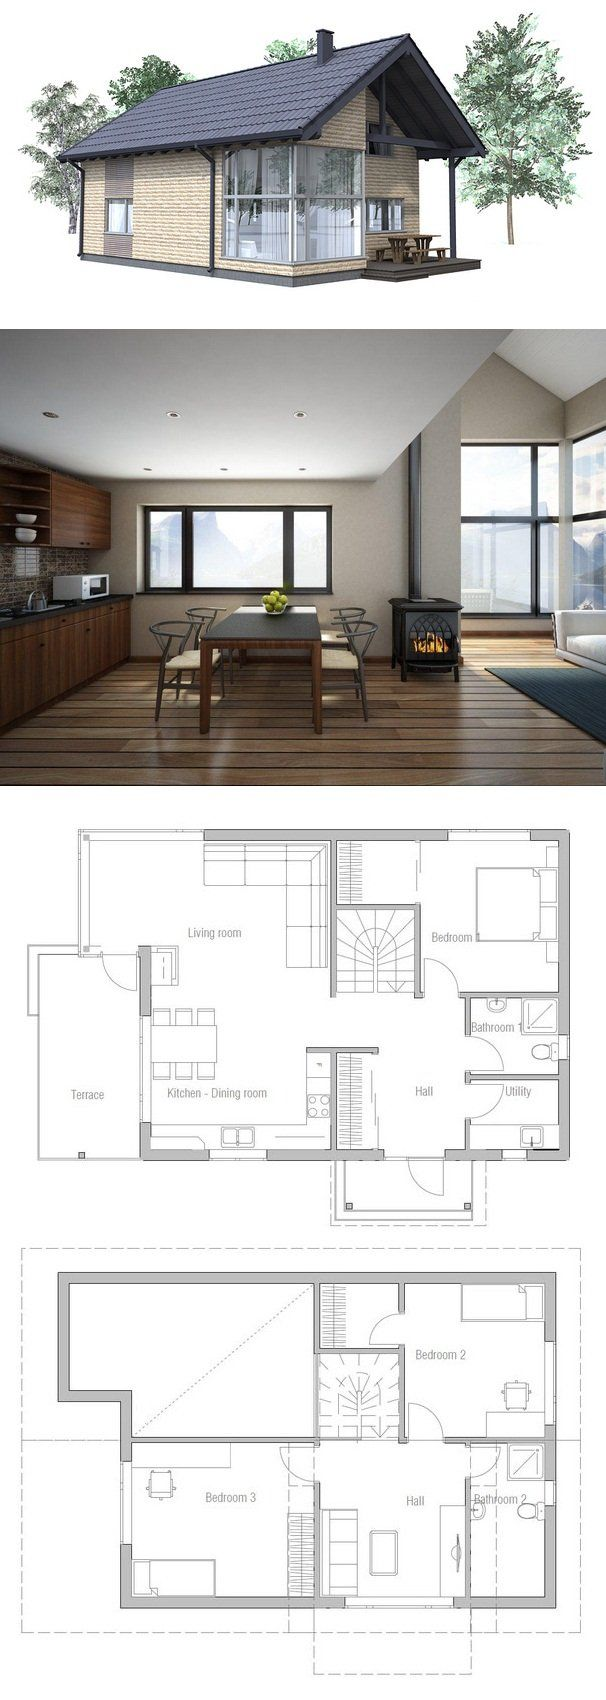 cool plan nice clean decor we wouldn u0027t need the second floor